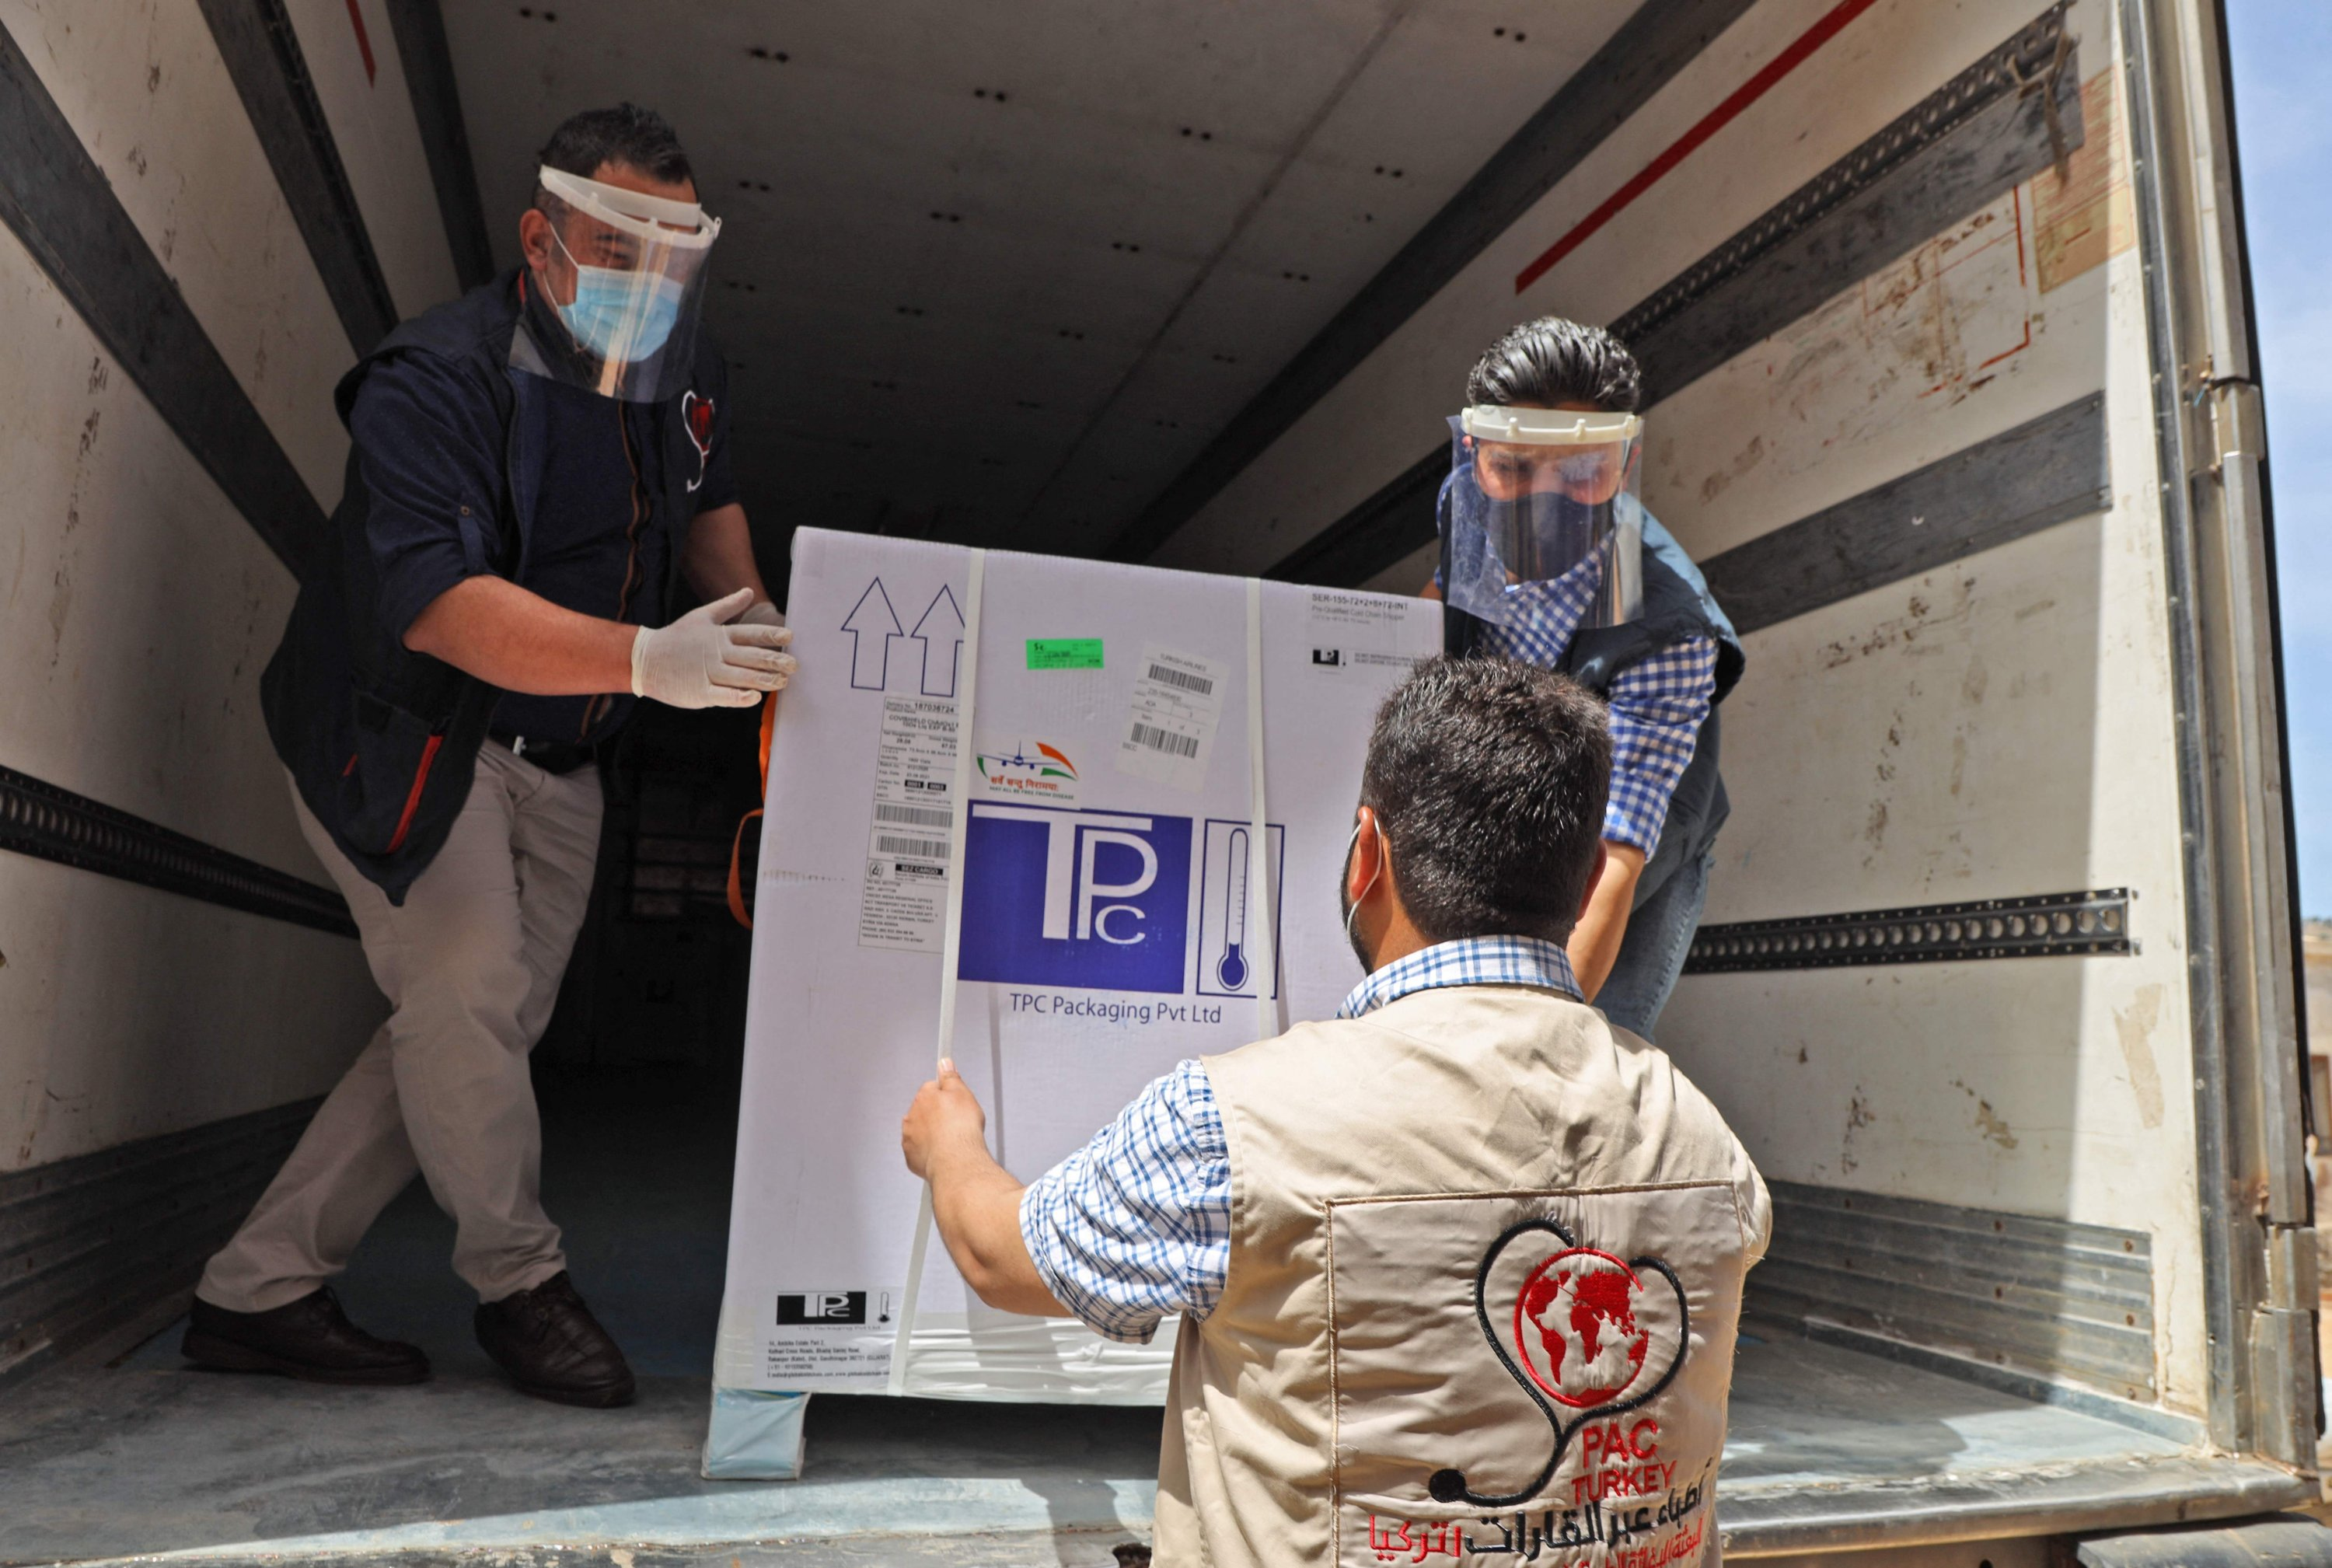 Staff of the Physicians Across Continents group unload the first batch of AstraZeneca COVID-19 vaccines at Bab al-Hawa border crossing between Syria and Turkey in Syria's opposition-held northwestern Idlib, April 21, 2021. (AFP Photo)